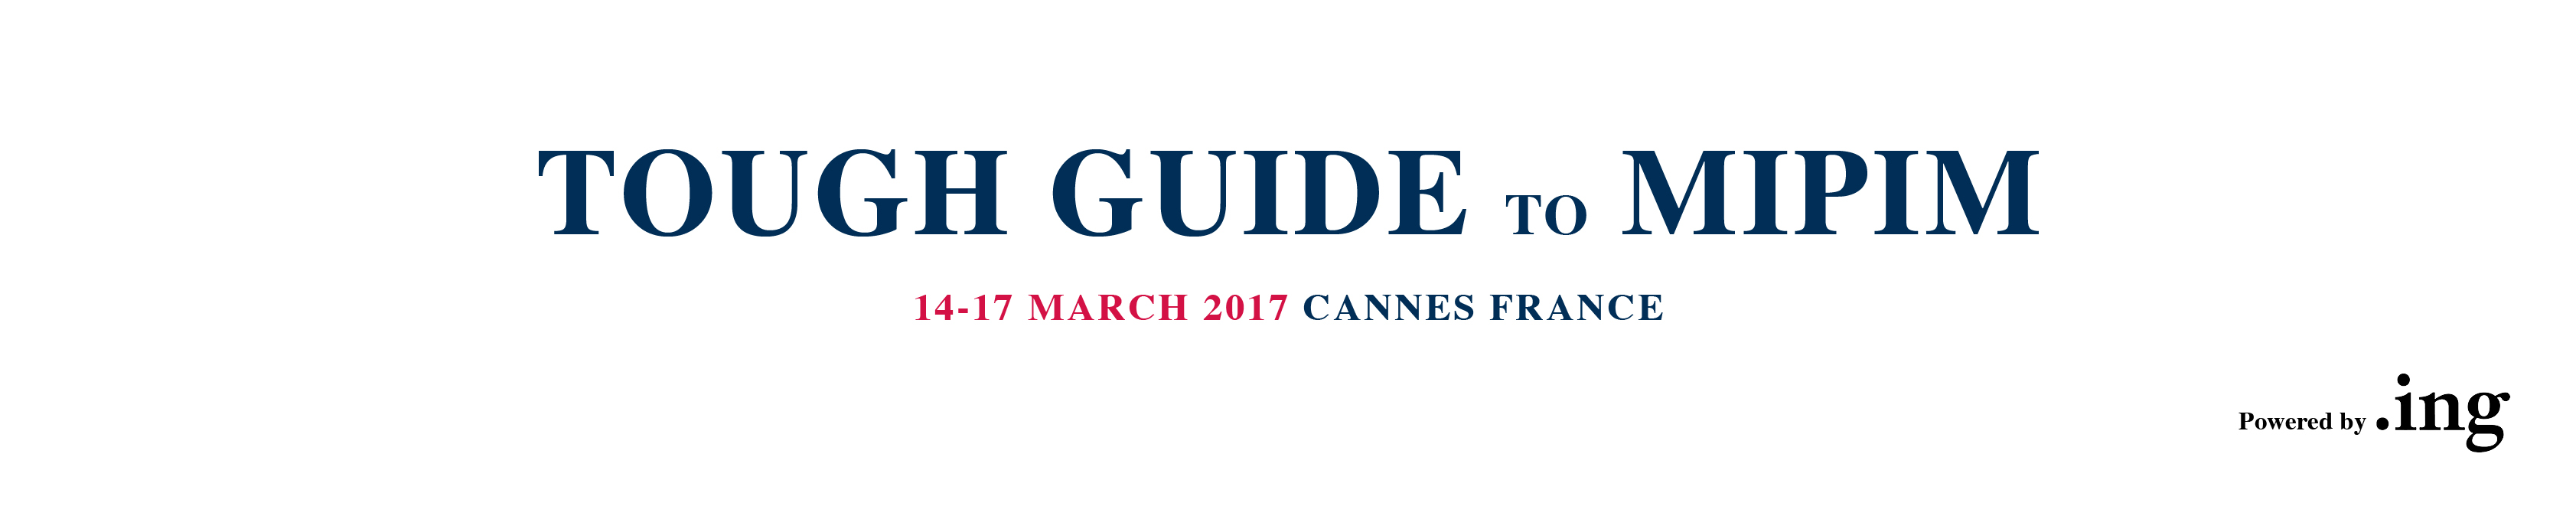 MIPIM TOUGH GUIDE 2017